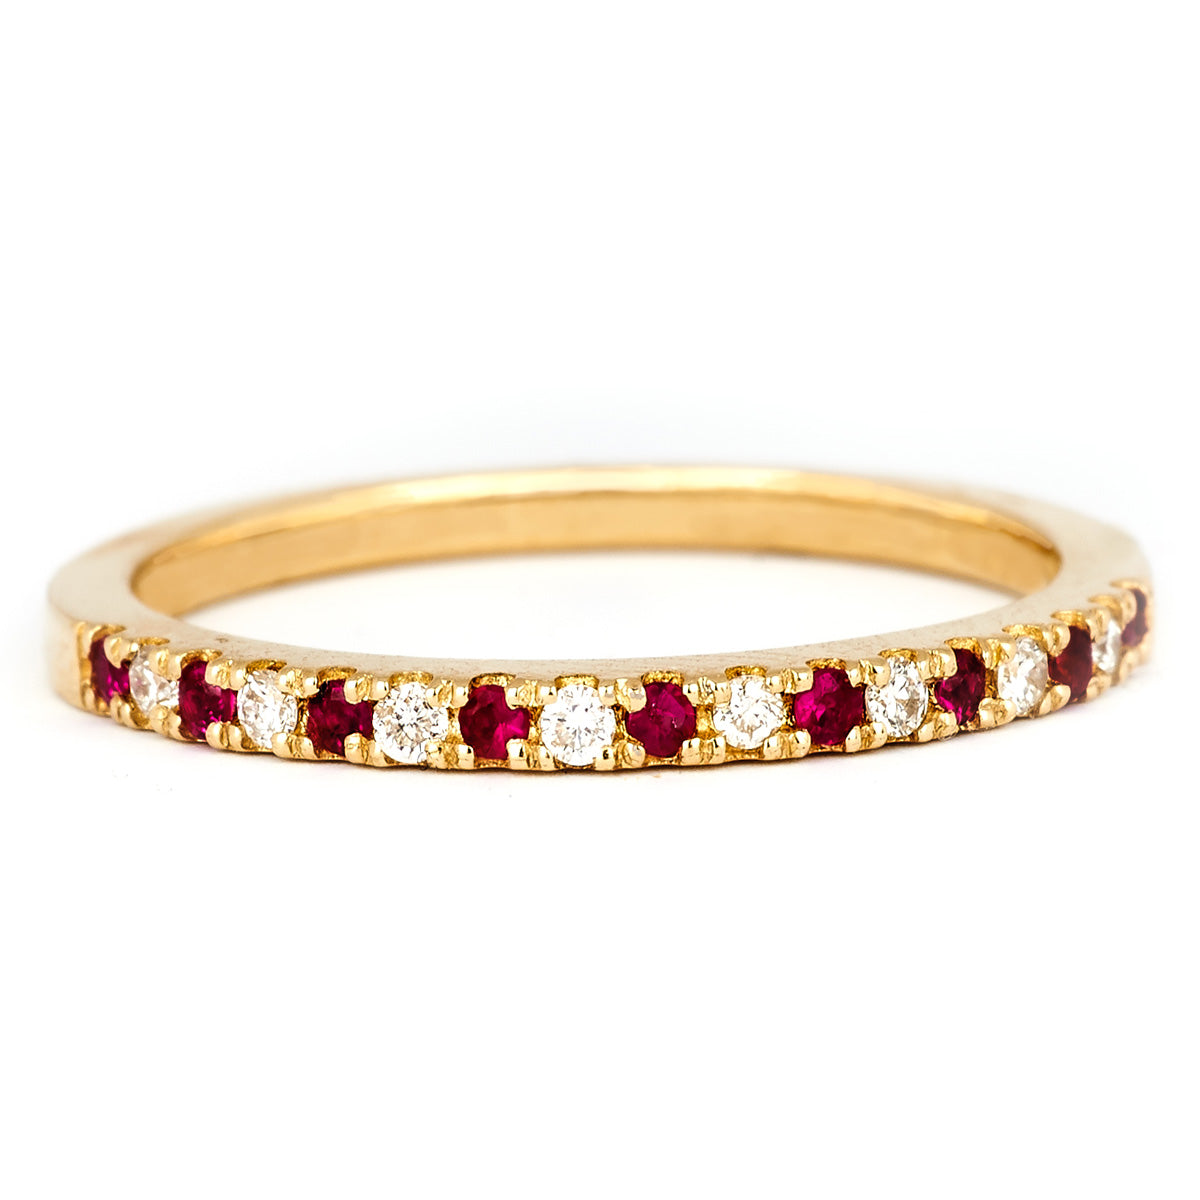 Yellow gold, diamond and ruby pavé ring by Jessica Jewellery.